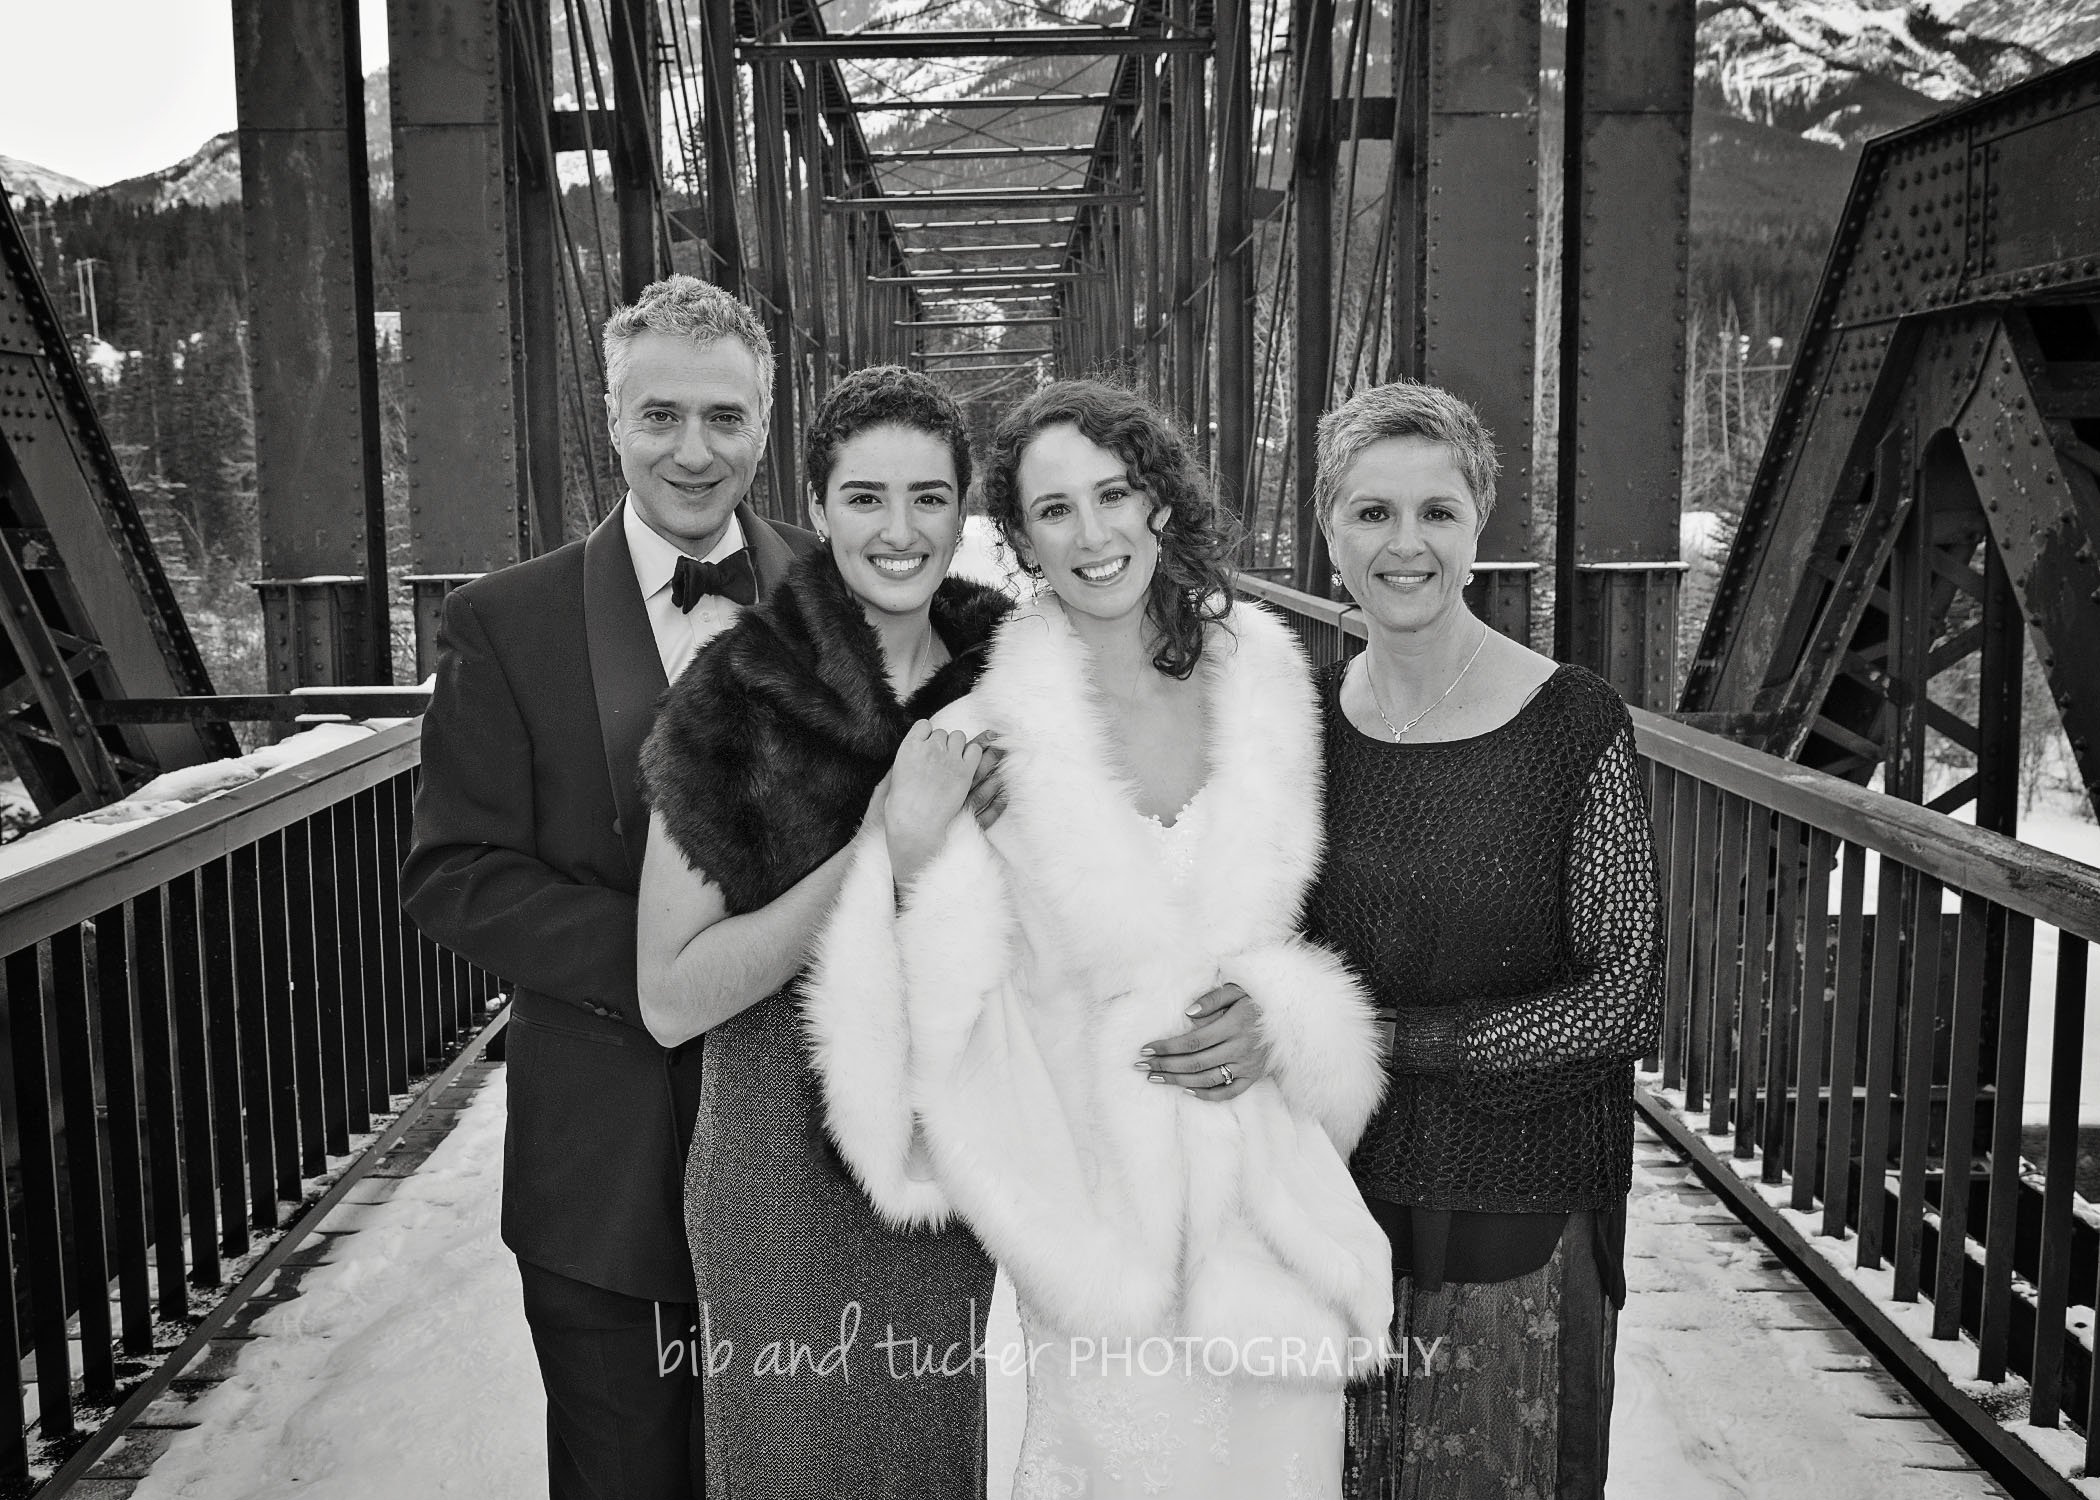 ©BibandTuckerPhotographyFAMILY_20.jpg